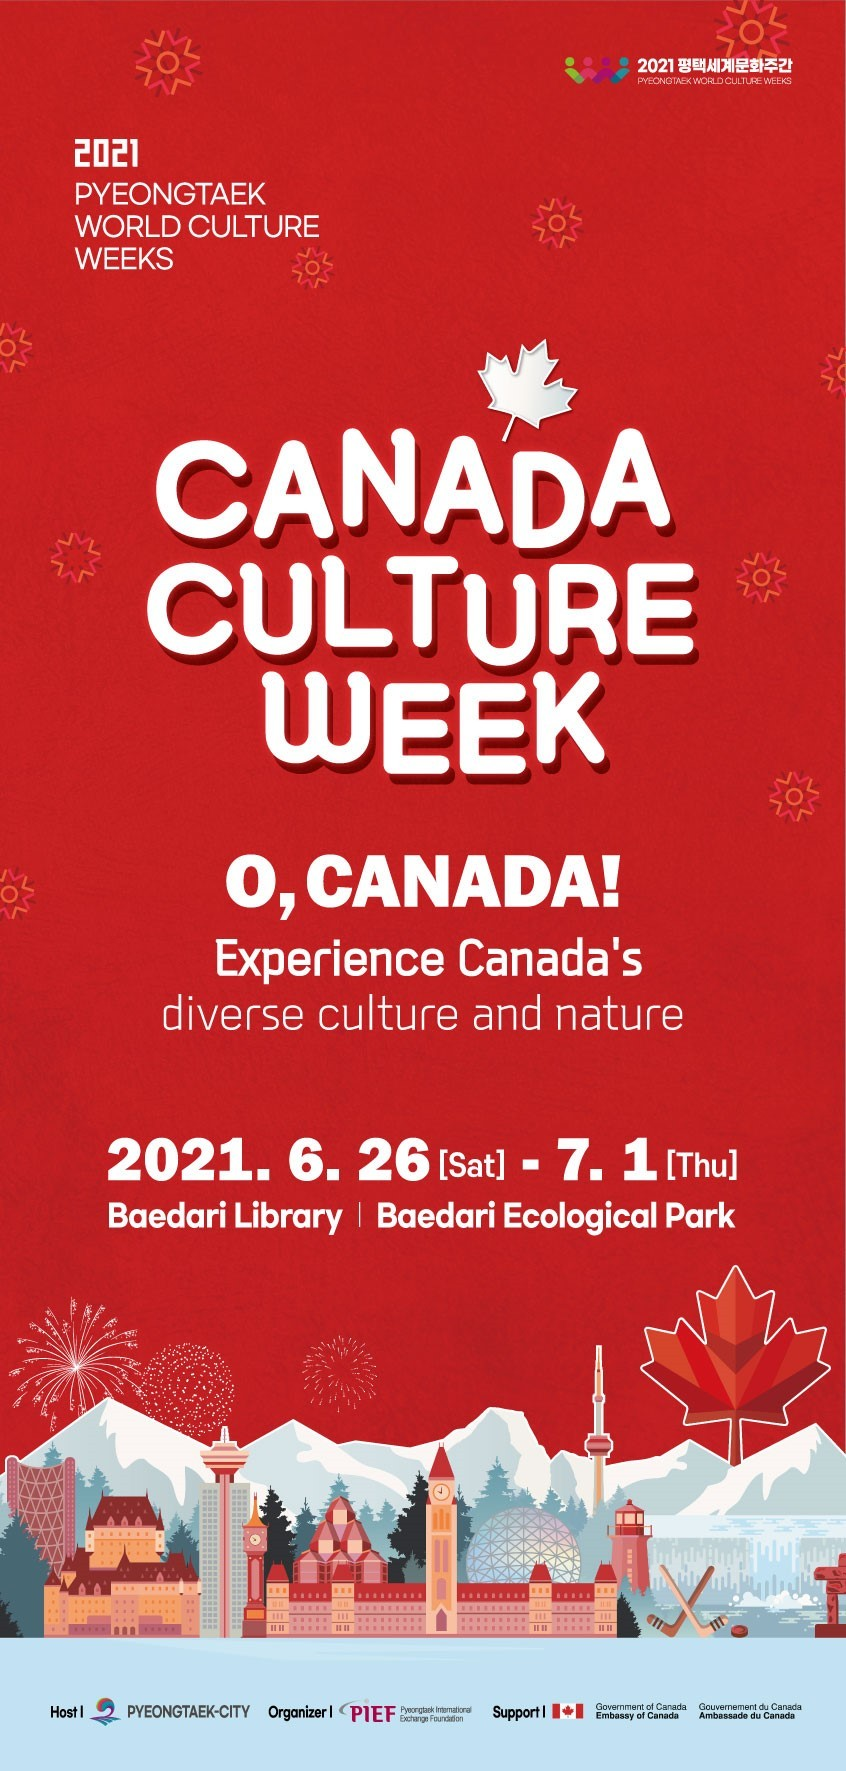 Poster for Canada Culture Week hosted by the city of Pyeongtaek and organized by the Pyeongtaek International Exchange Foundation (Embassy of Canada in Seoul)